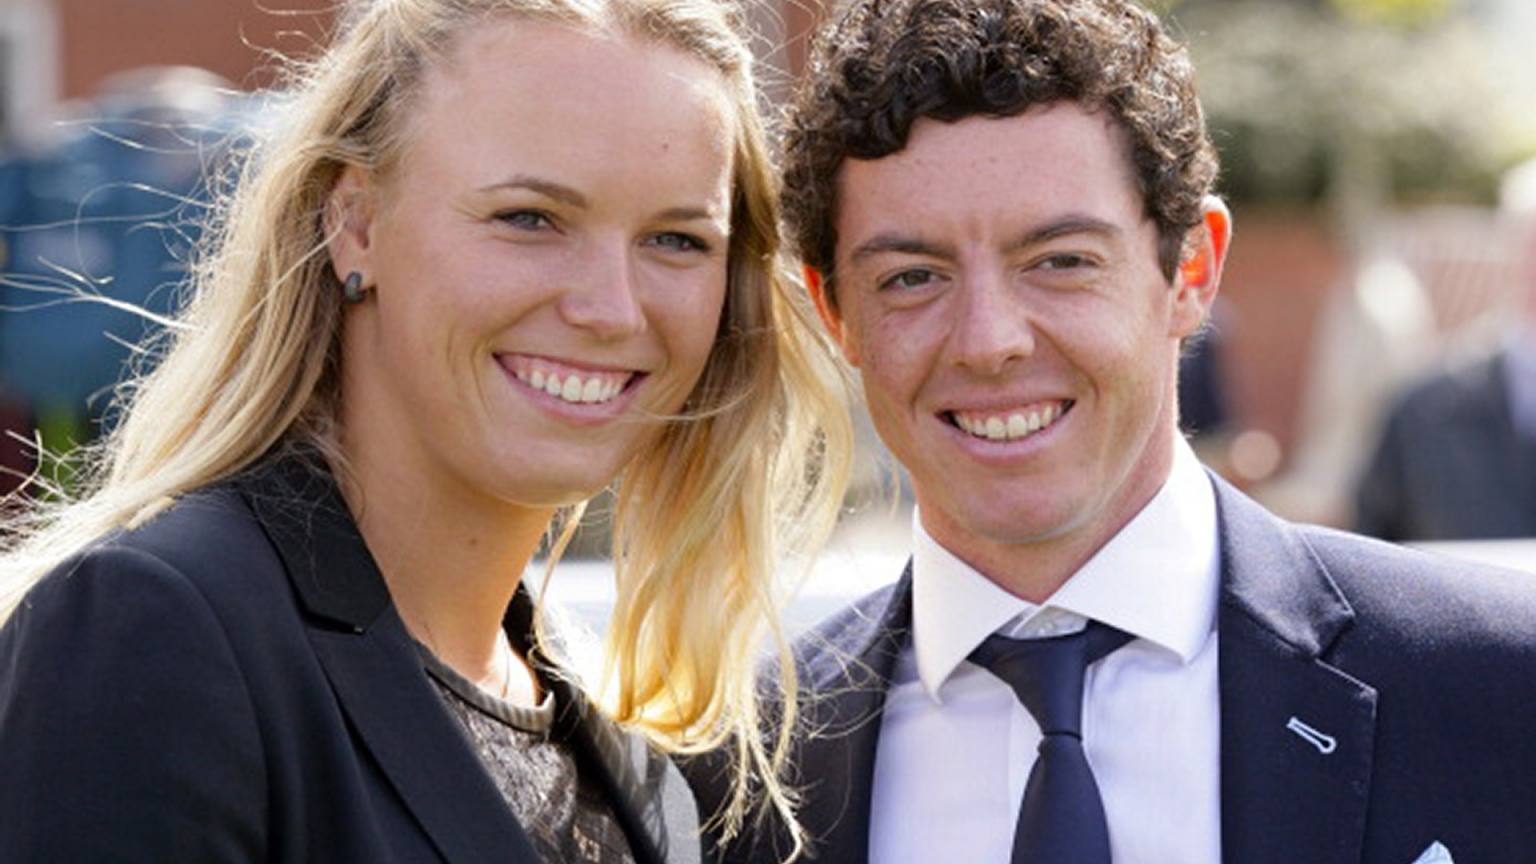 Caroline Wozniacki and Rory McIlroy for 1536 x 864 HDTV resolution